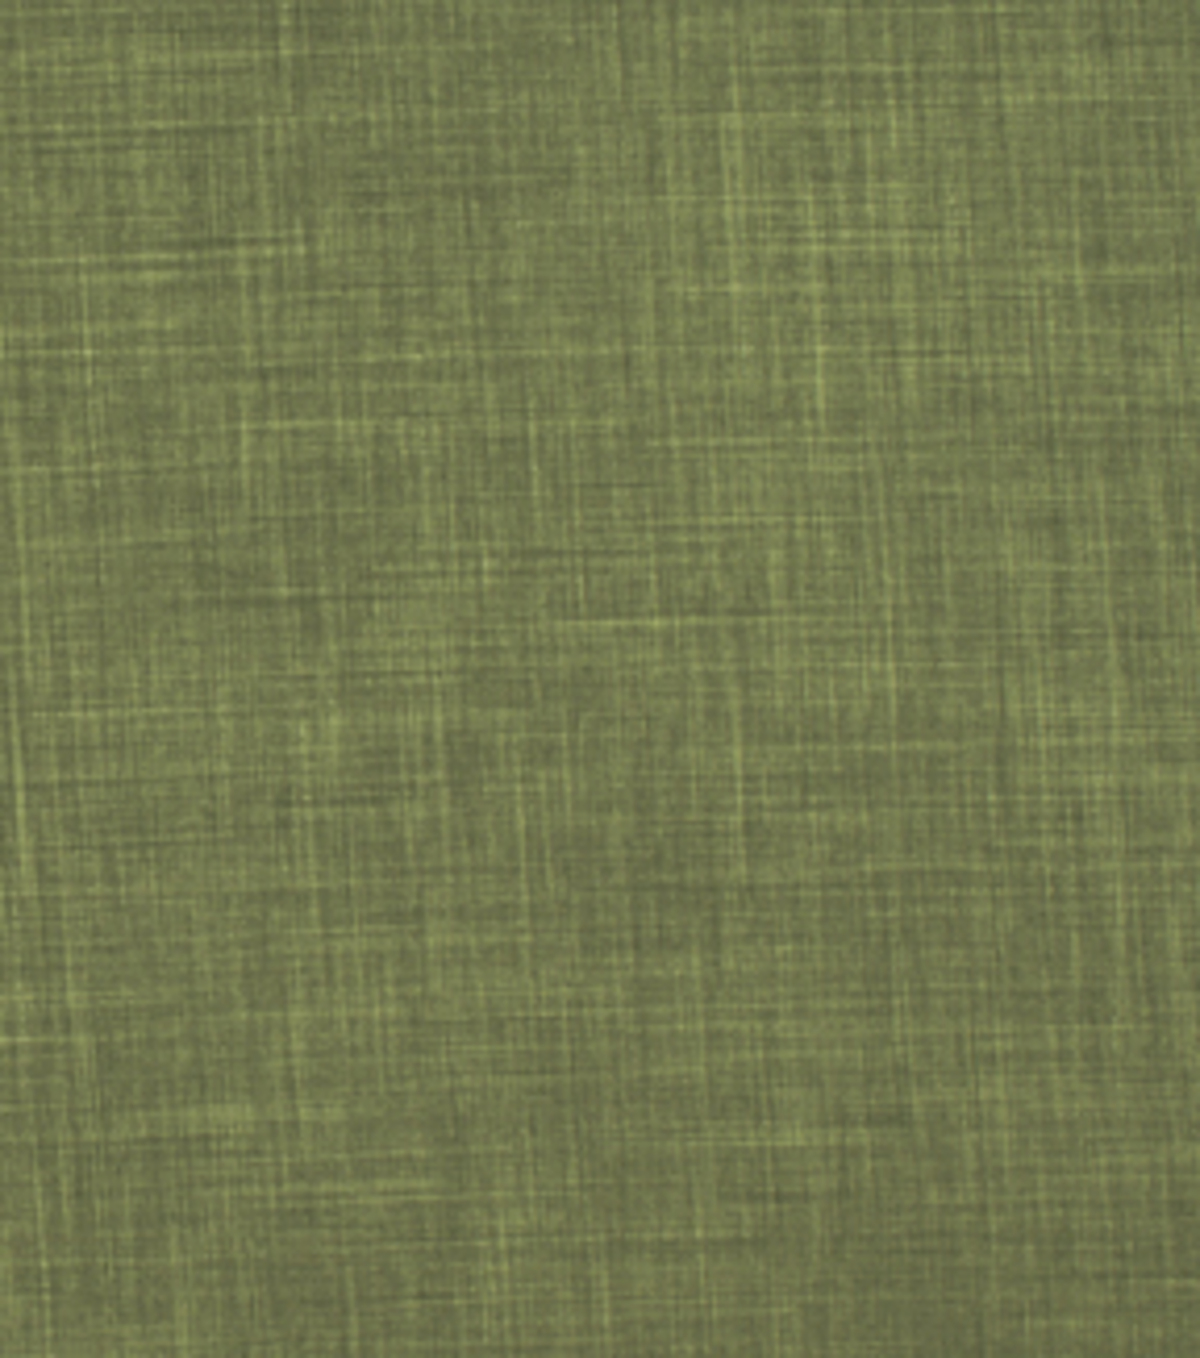 Home Decor 8\u0022x8\u0022 Fabric Swatch-Signature Series Adrift Parsley